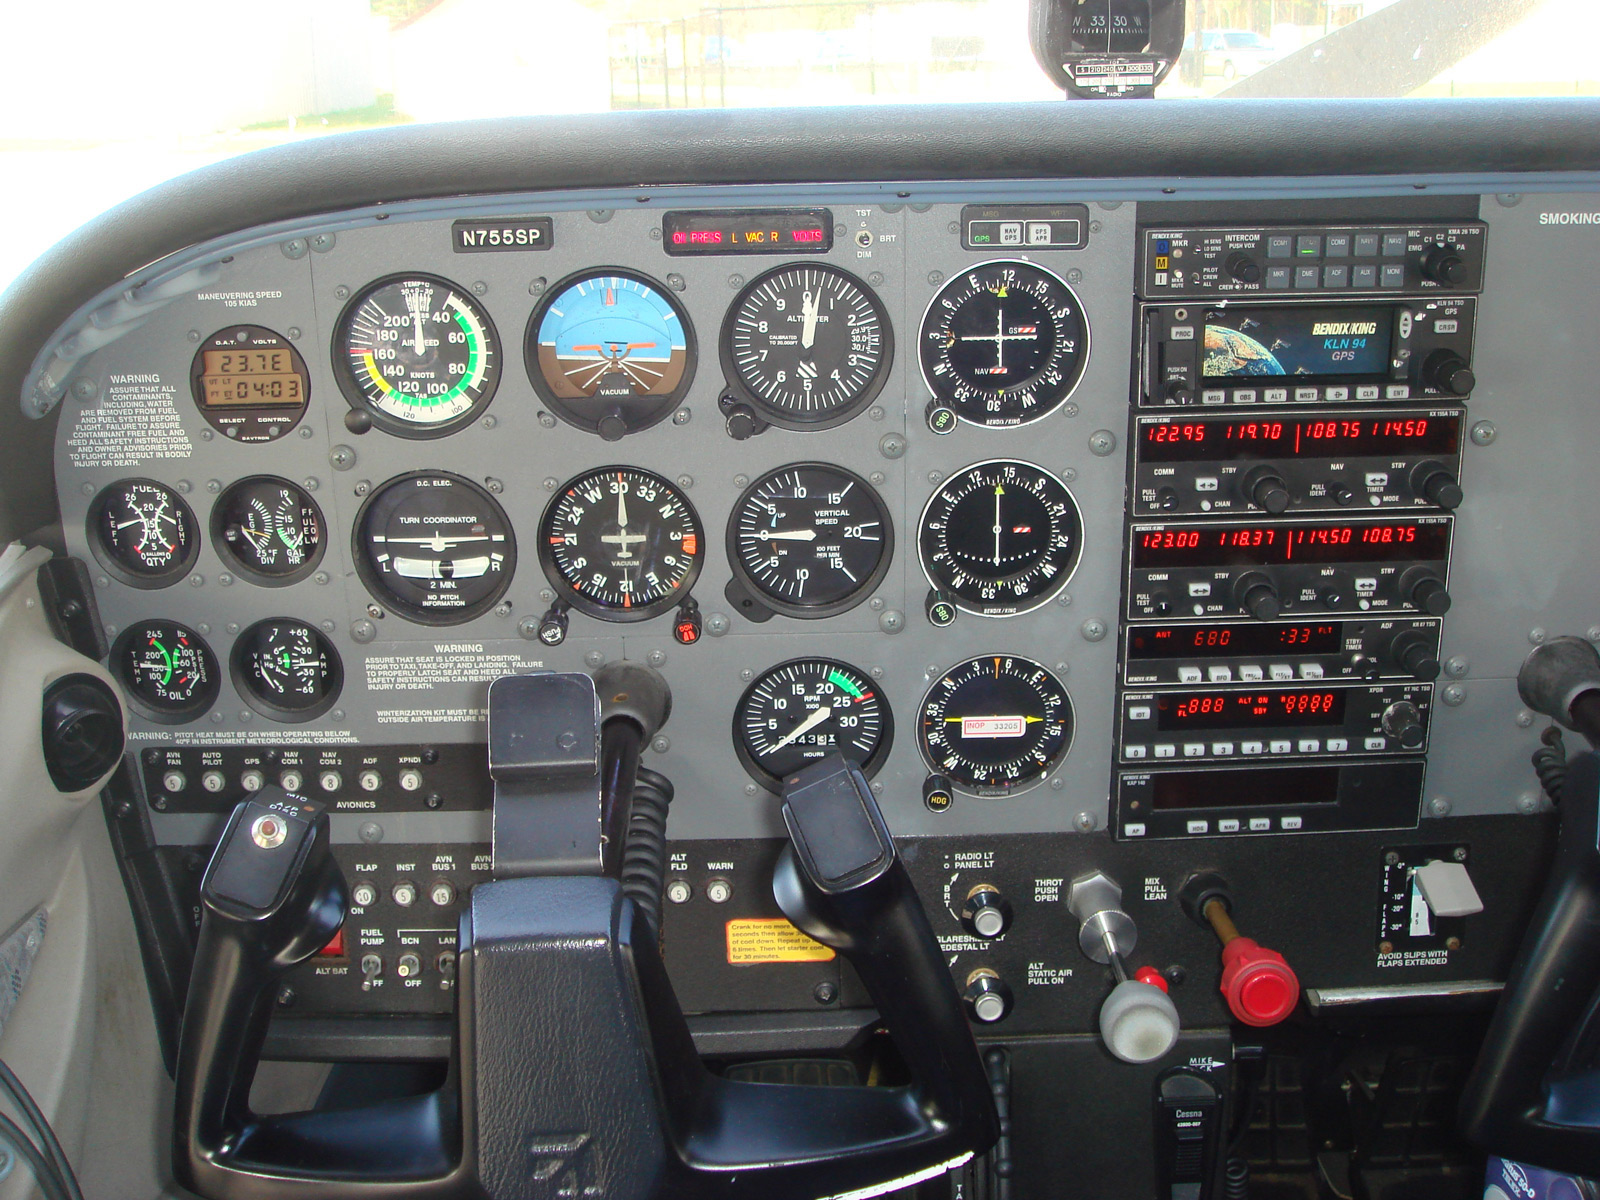 hight resolution of cessna 172 wiring diagram cessna free engine image for aircraft alternator wiring diagram cessna 172 electrical